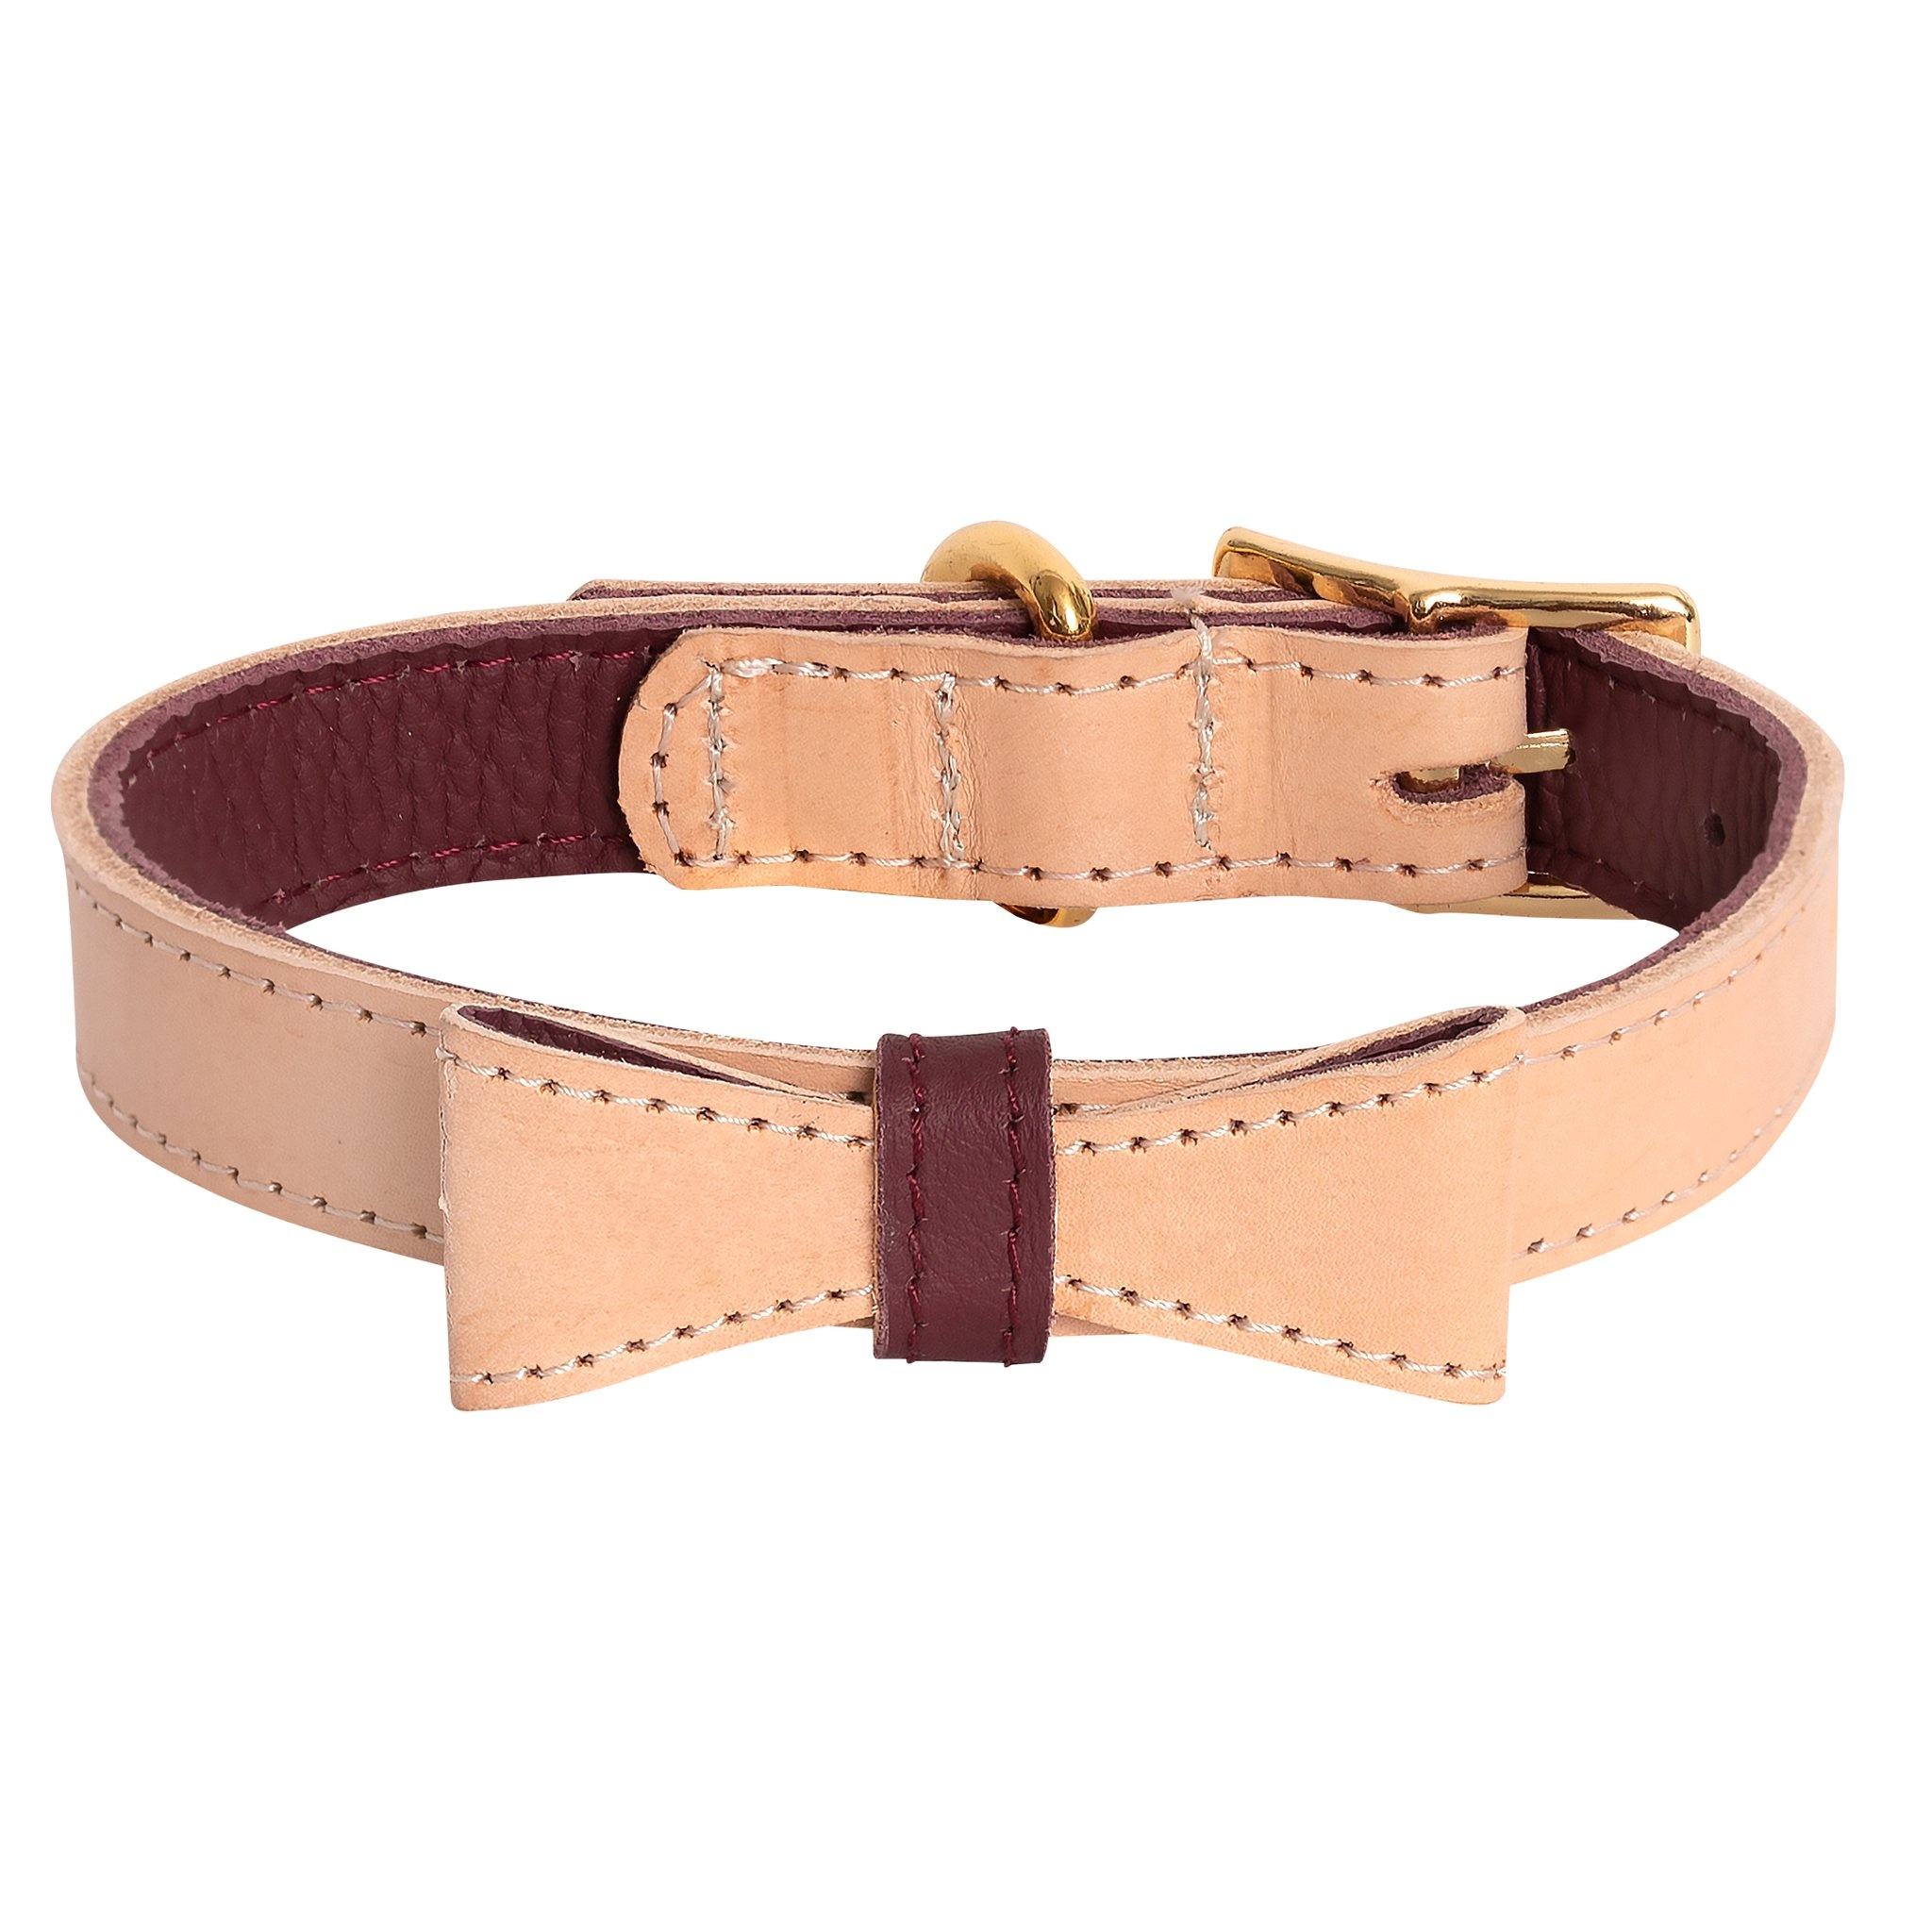 Poise Pup Collar Artisan Luscious Bow Leather Maroon